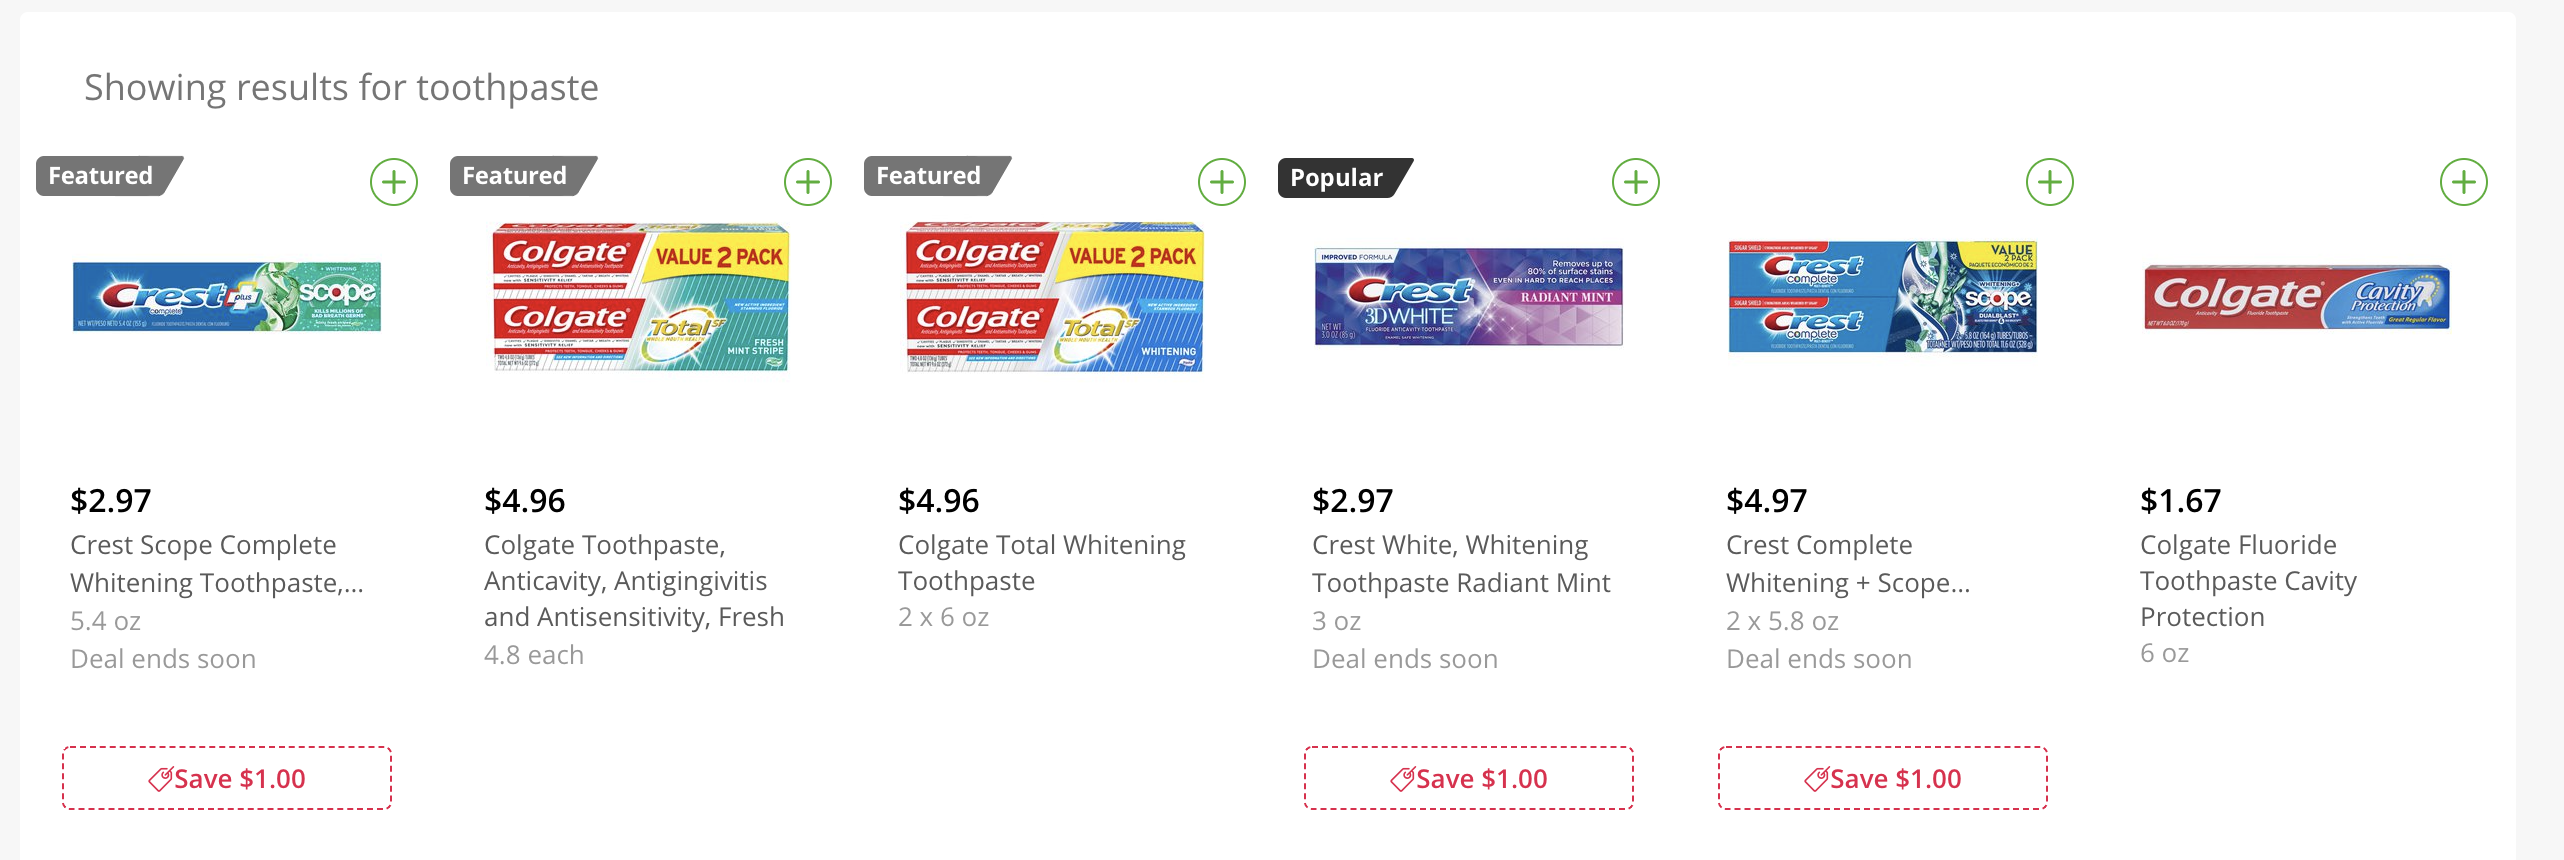 Instacart-Guide-Coupons.png